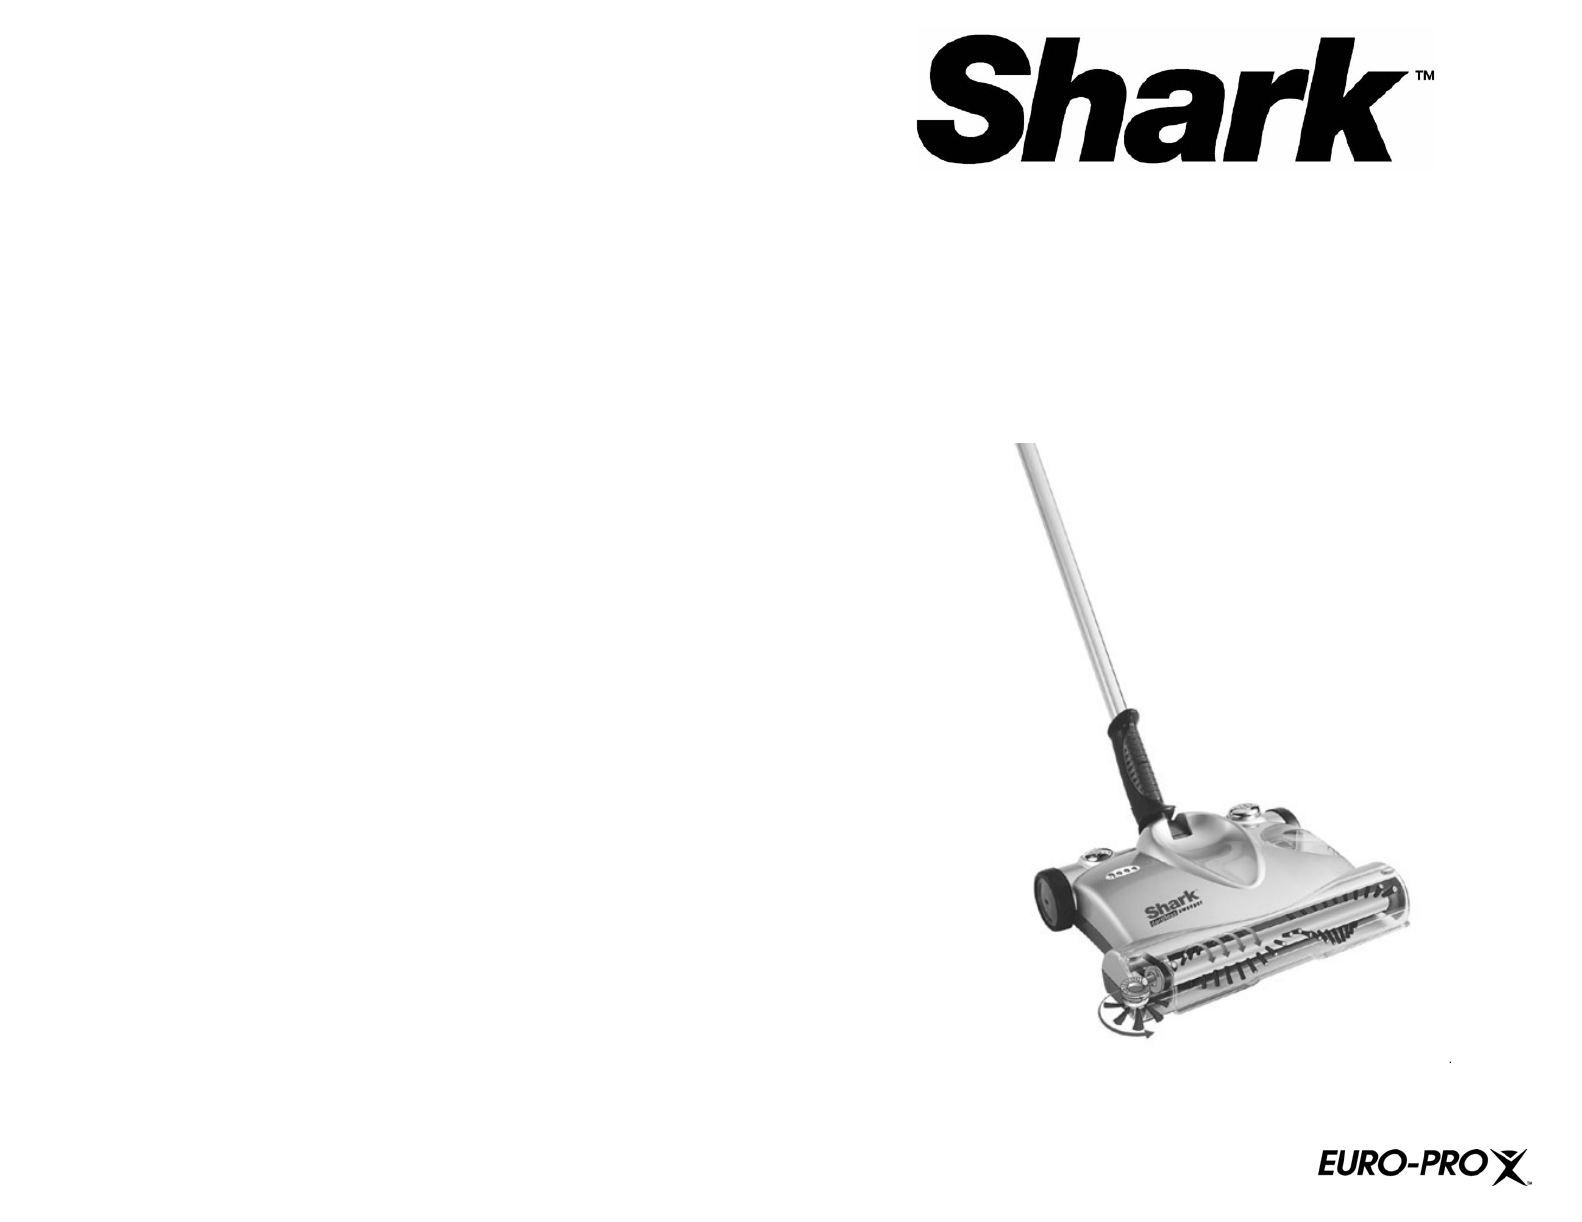 Euro Pro Shark Nv22 Navigator Bagless Upright as well Freestanding Falcon Dual Fuel Oven Stove Clas110dffrg Ch furthermore Bissell 95p1 furthermore Shark Vacuum Owners Manual likewise Shopvac 9623710. on green upright vacuum